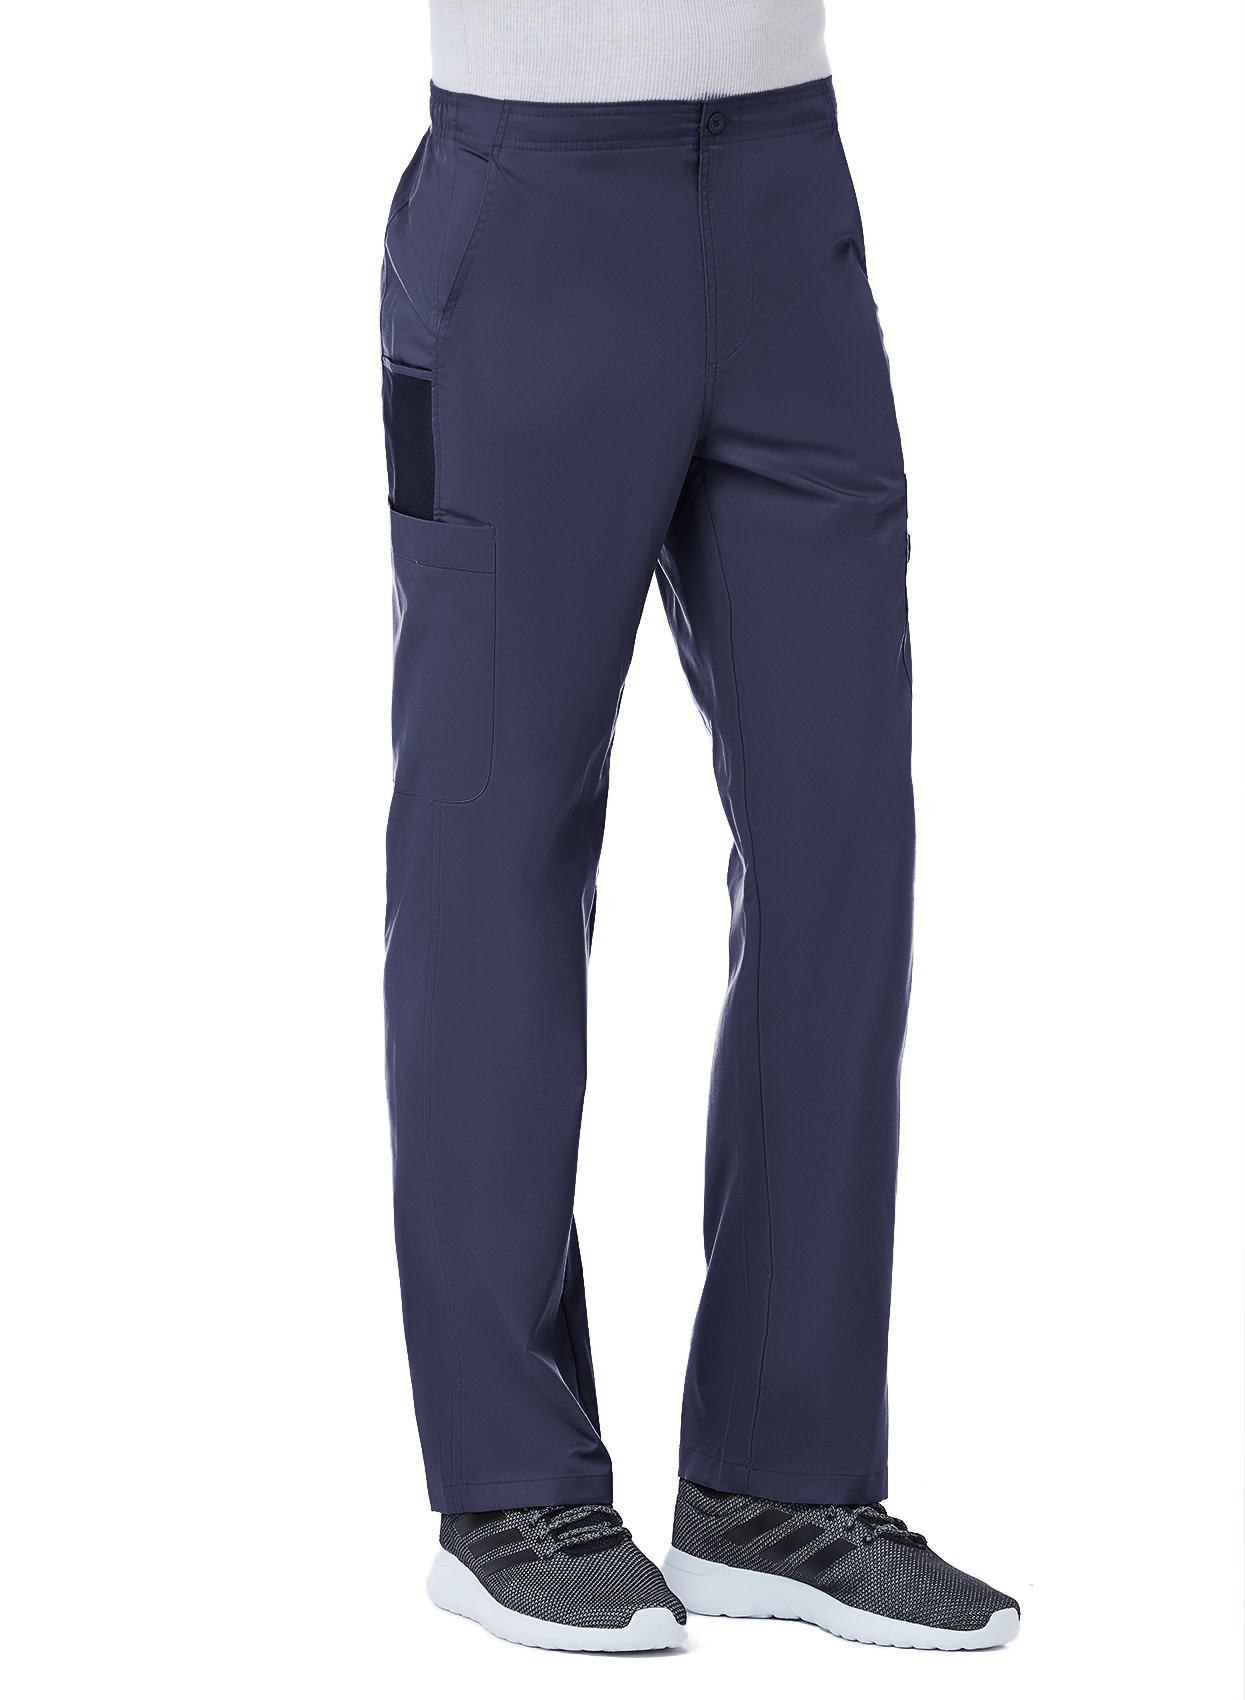 Navy Blue Men's Half Elastic 8-Pocket Tall Cargo Pants 8308T